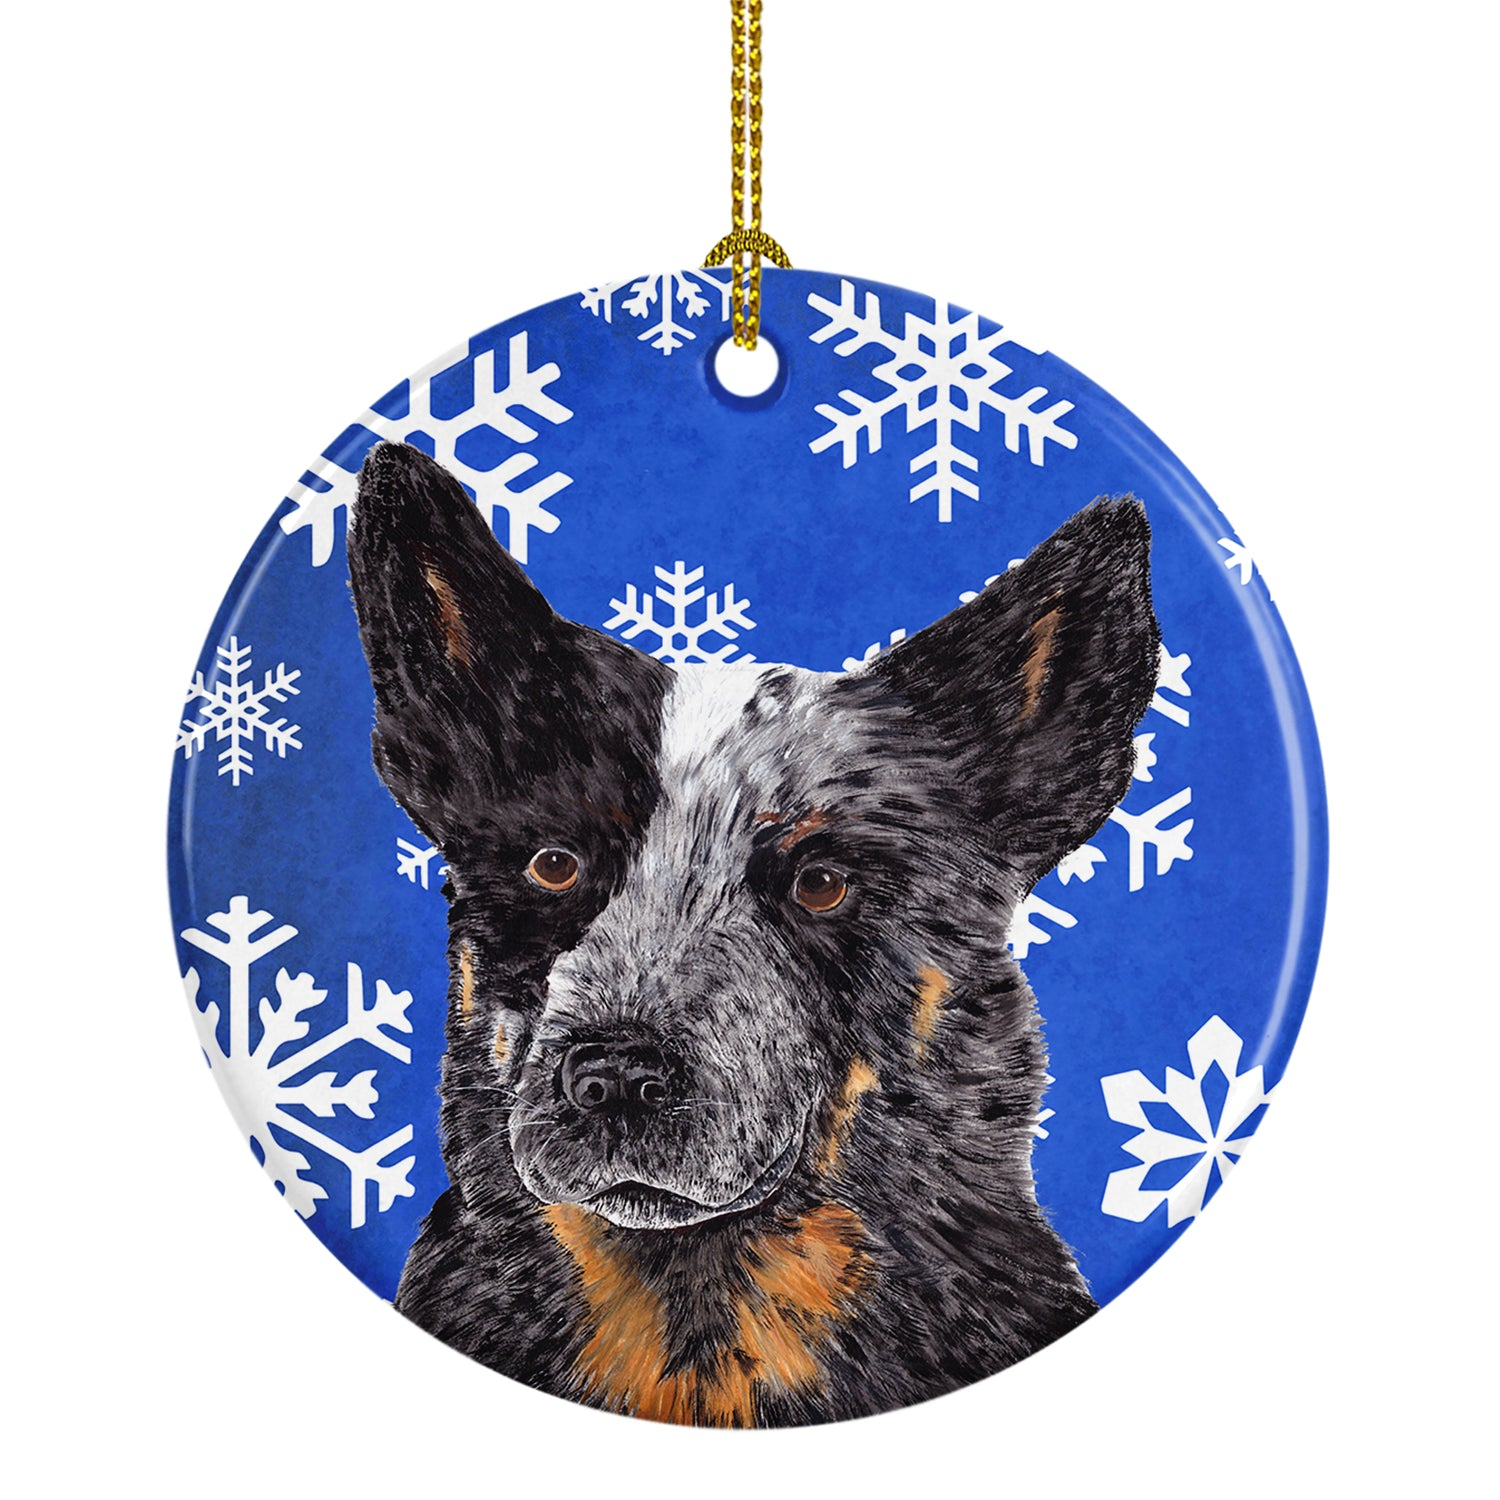 Australian Cattle Dog Winter Snowflakes Holiday Ceramic Ornament SC9396 by Caroline's Treasures